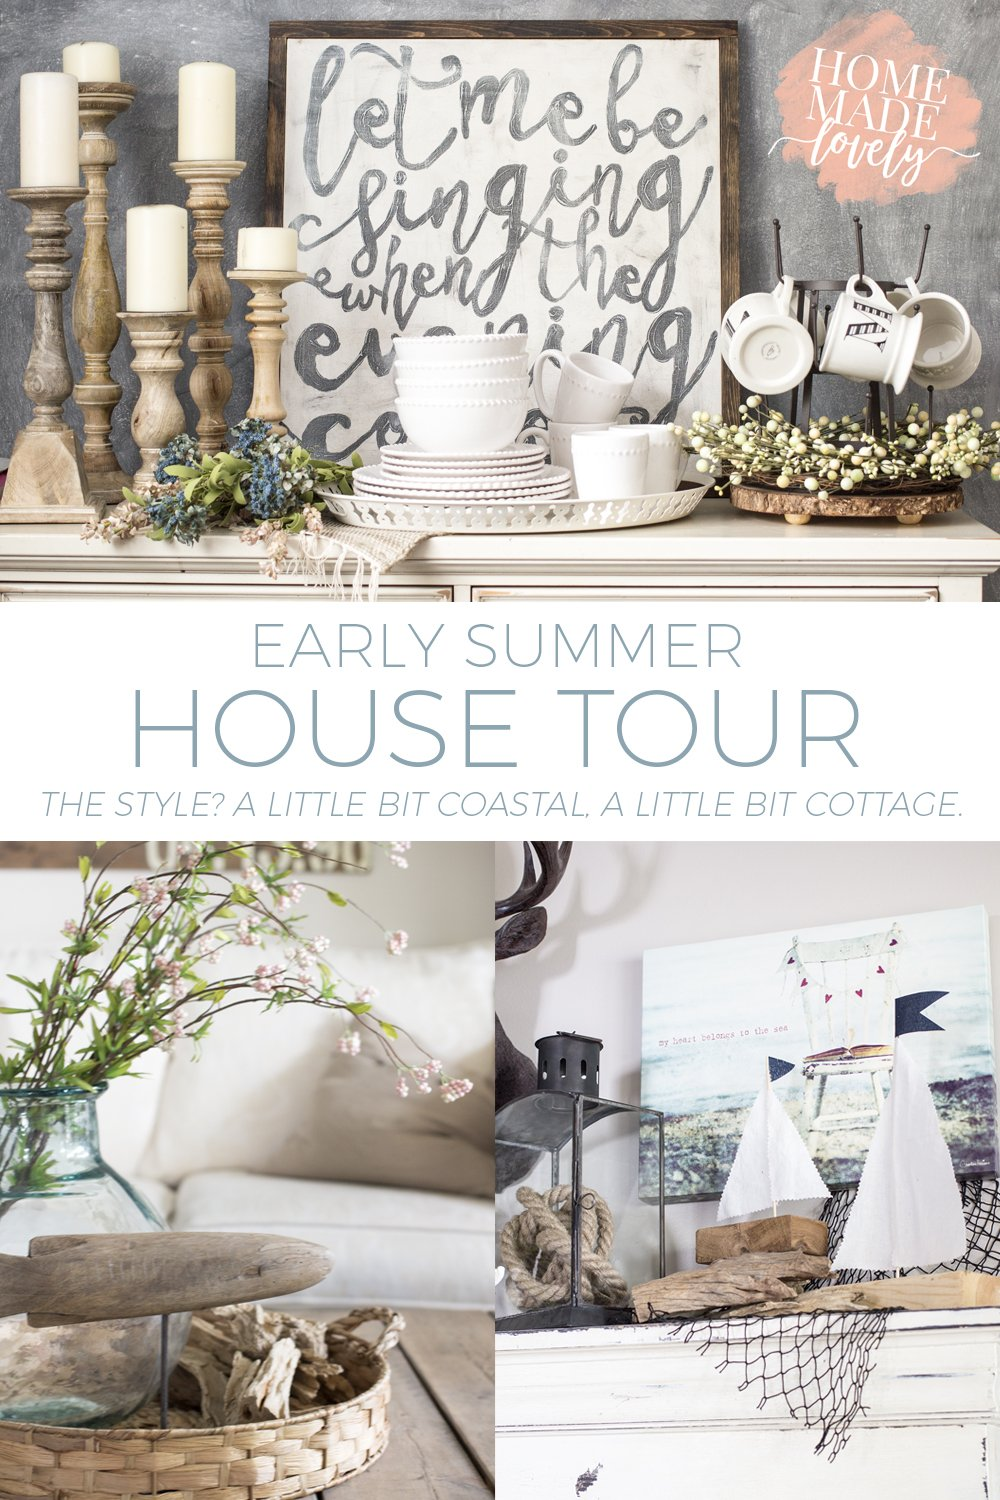 Here's our slightly coastal, slightly cottage early summer house tour!